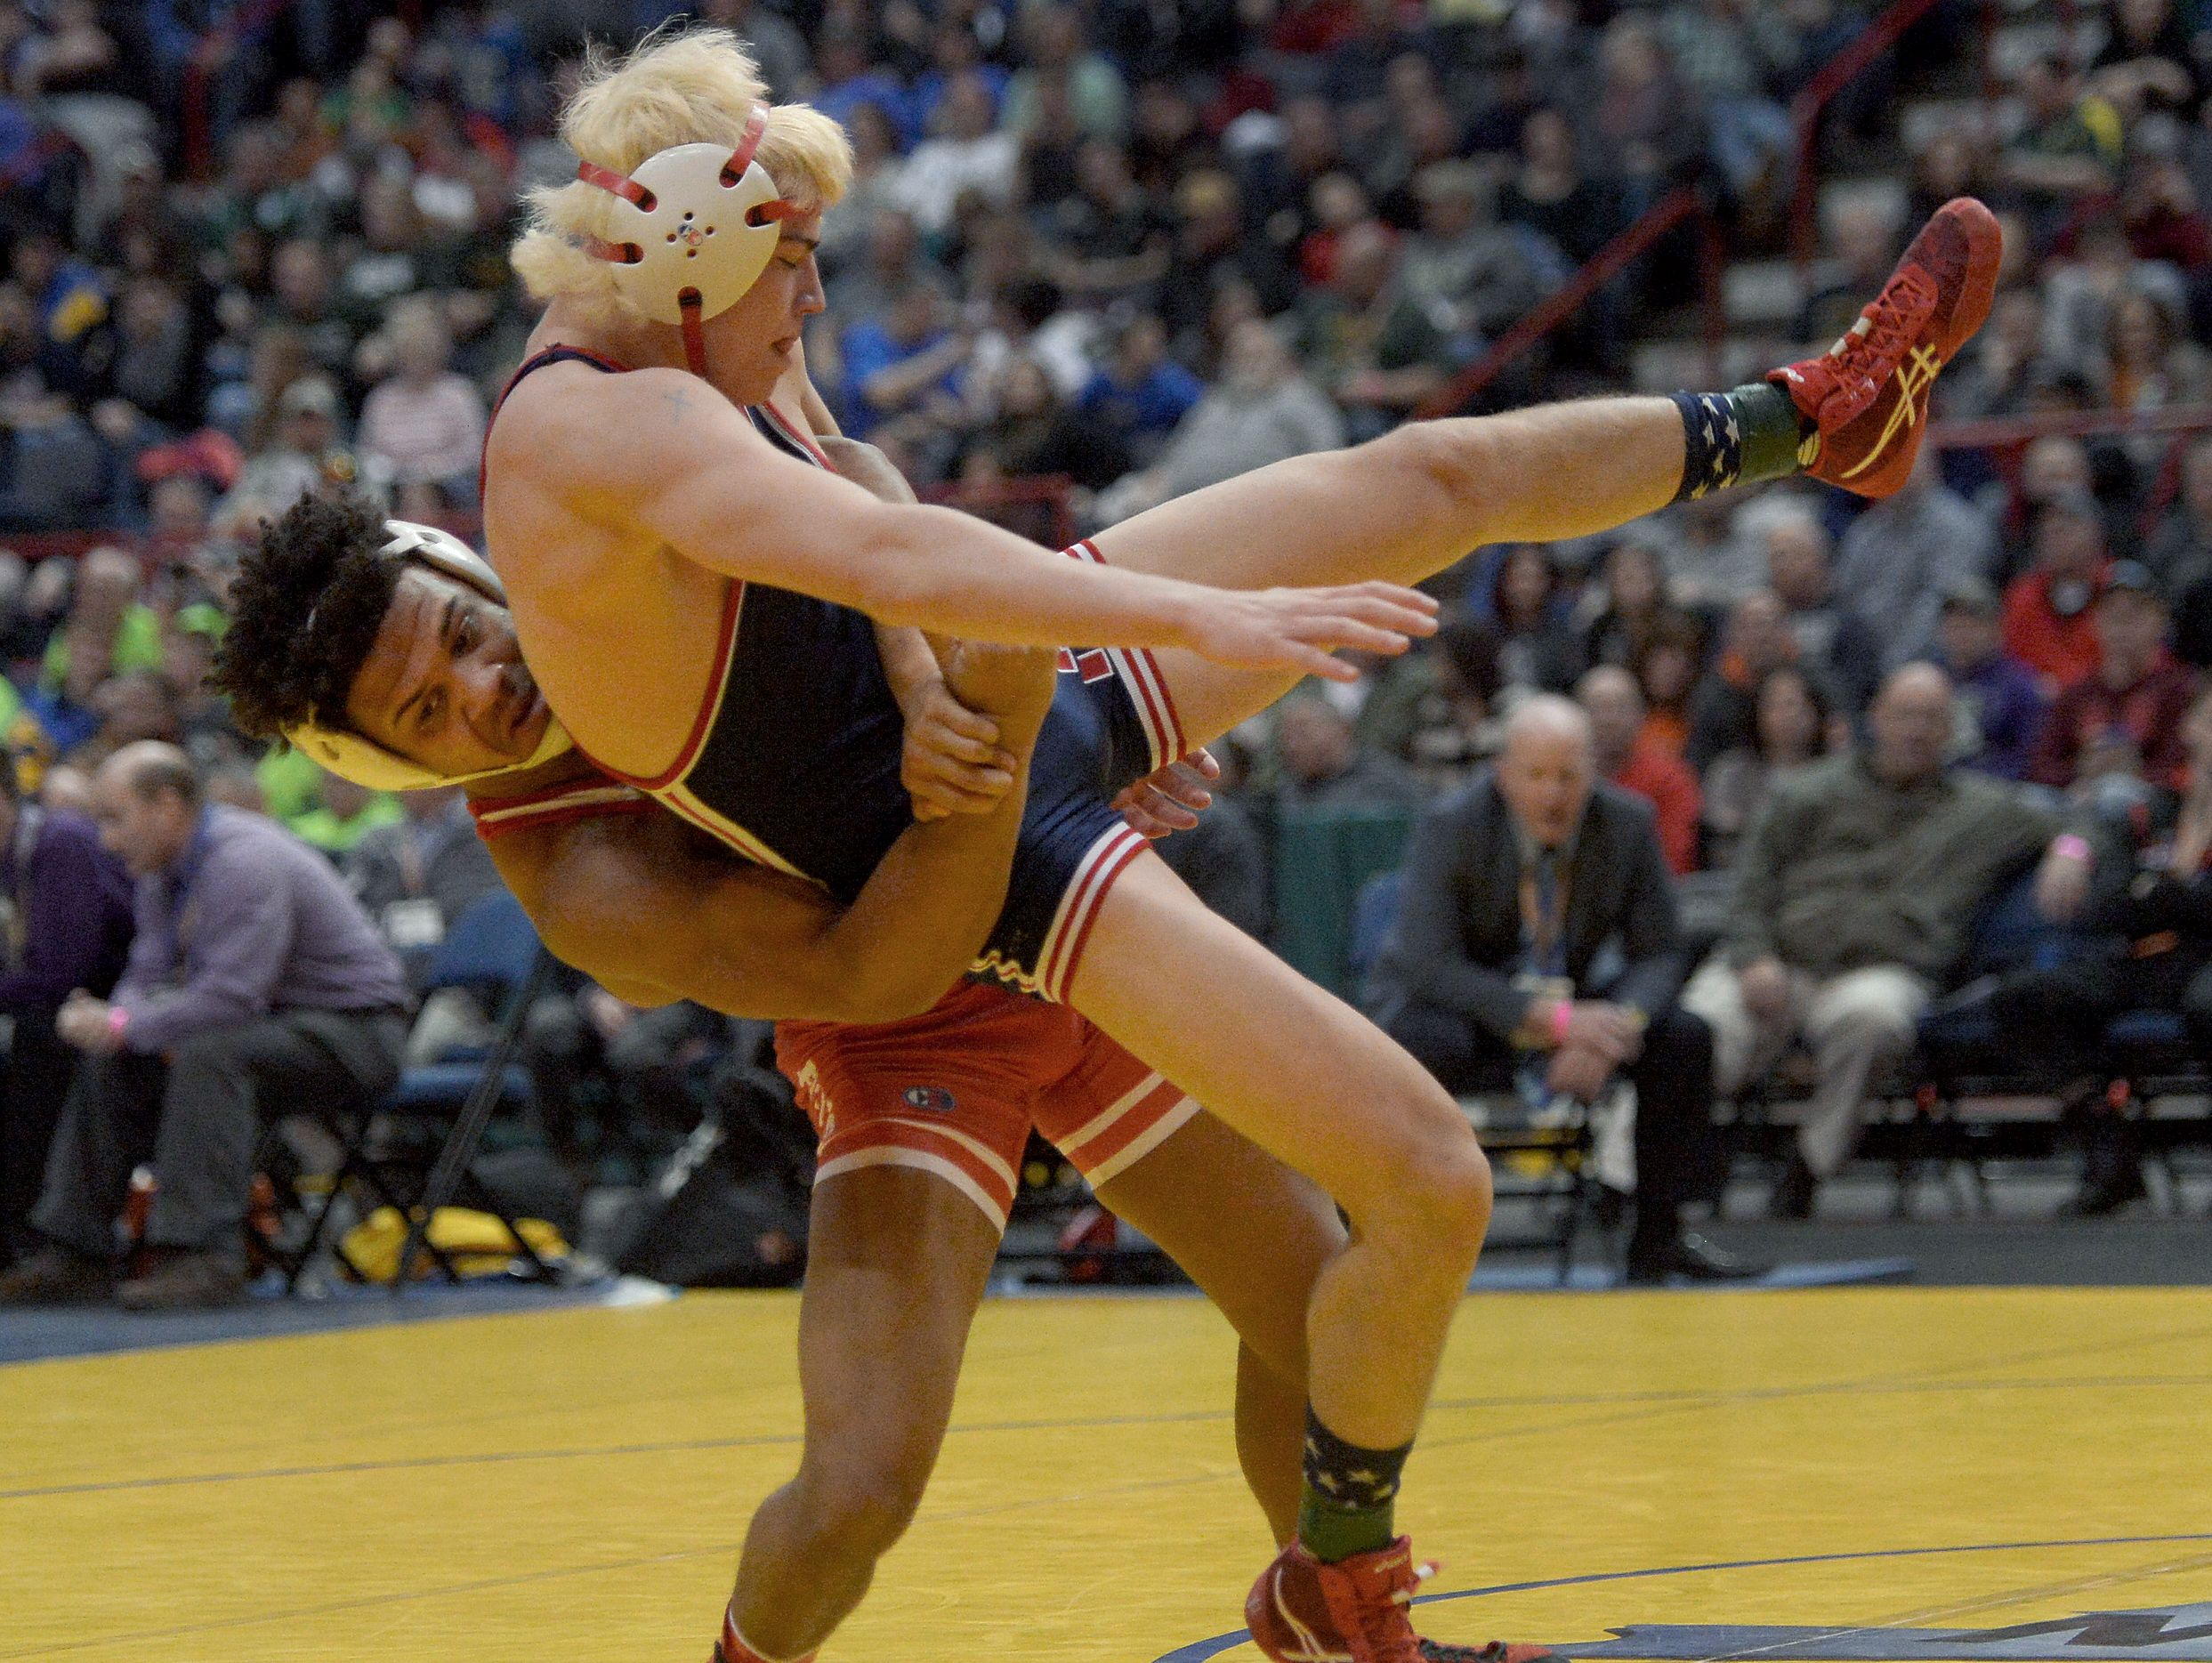 Penfield's Frankie Gissendanner, left, wrestling North Tonawanda's Troy Keller in the 2016 Division I state finals of the 145-pound class.